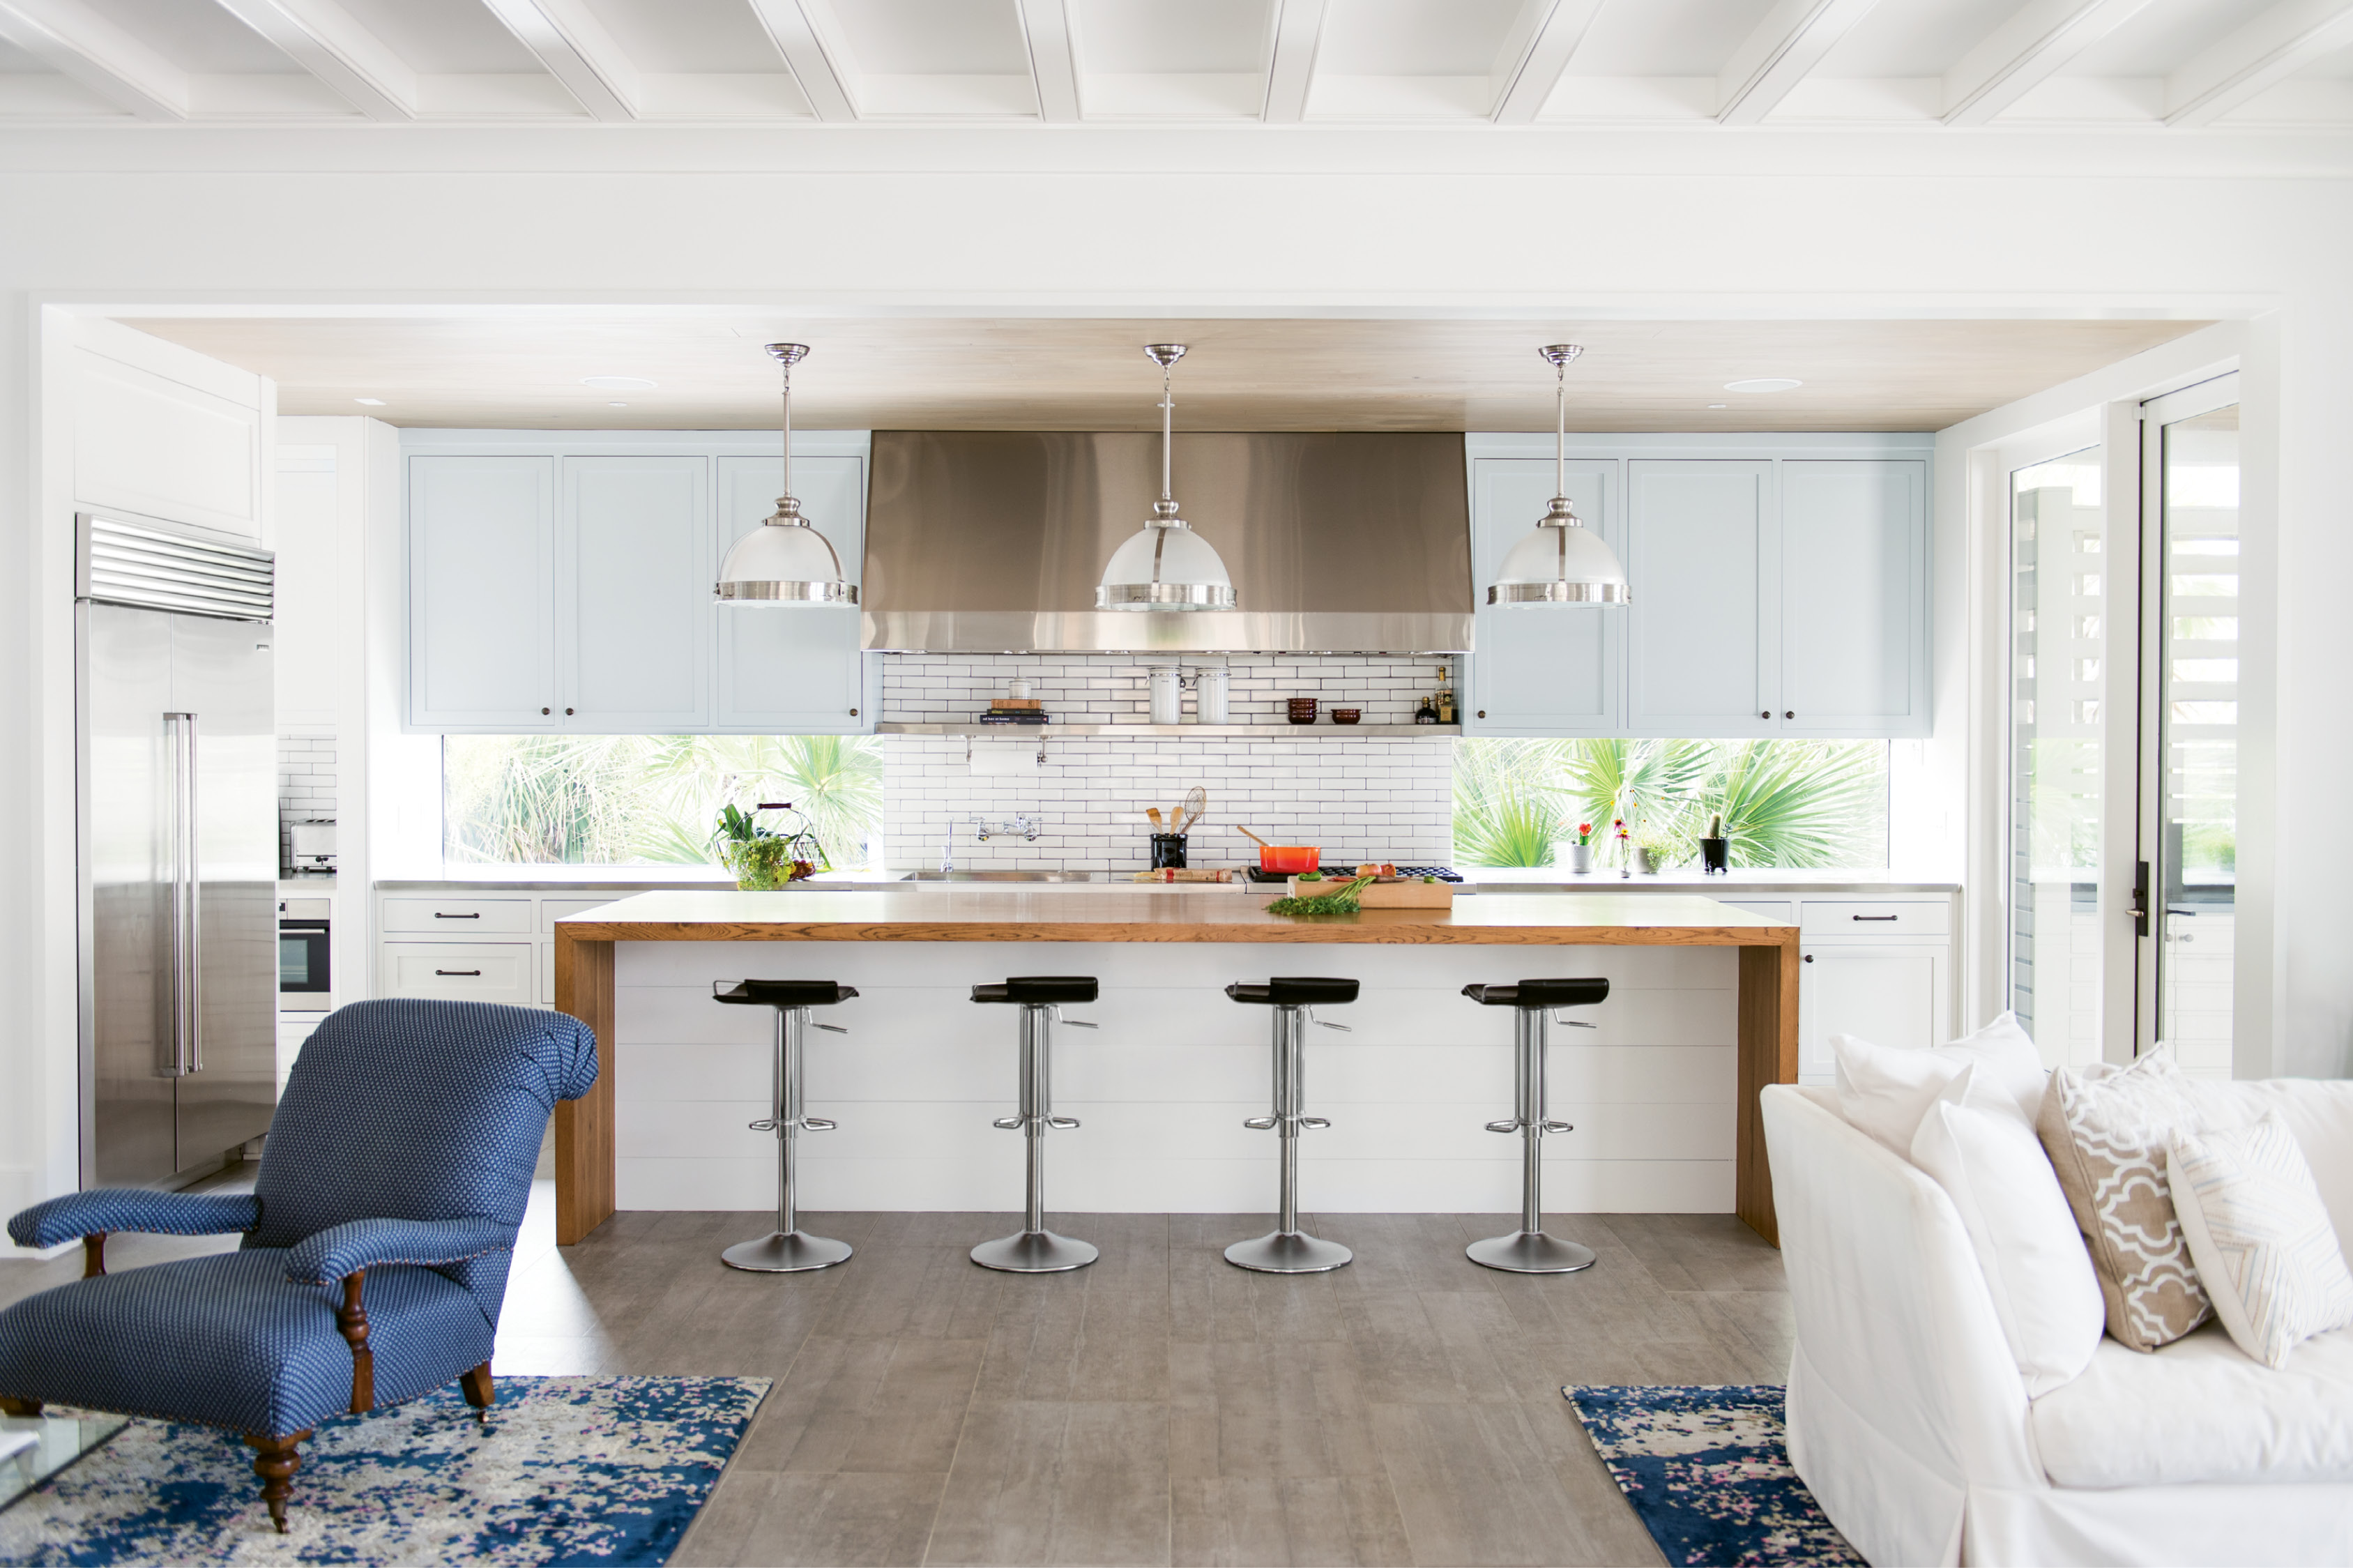 The use of windows over a traditional backsplash helps the home feel more connected to the landscape. Flush cypress ceilings and cement-tile flooring reinforce the modern feel.